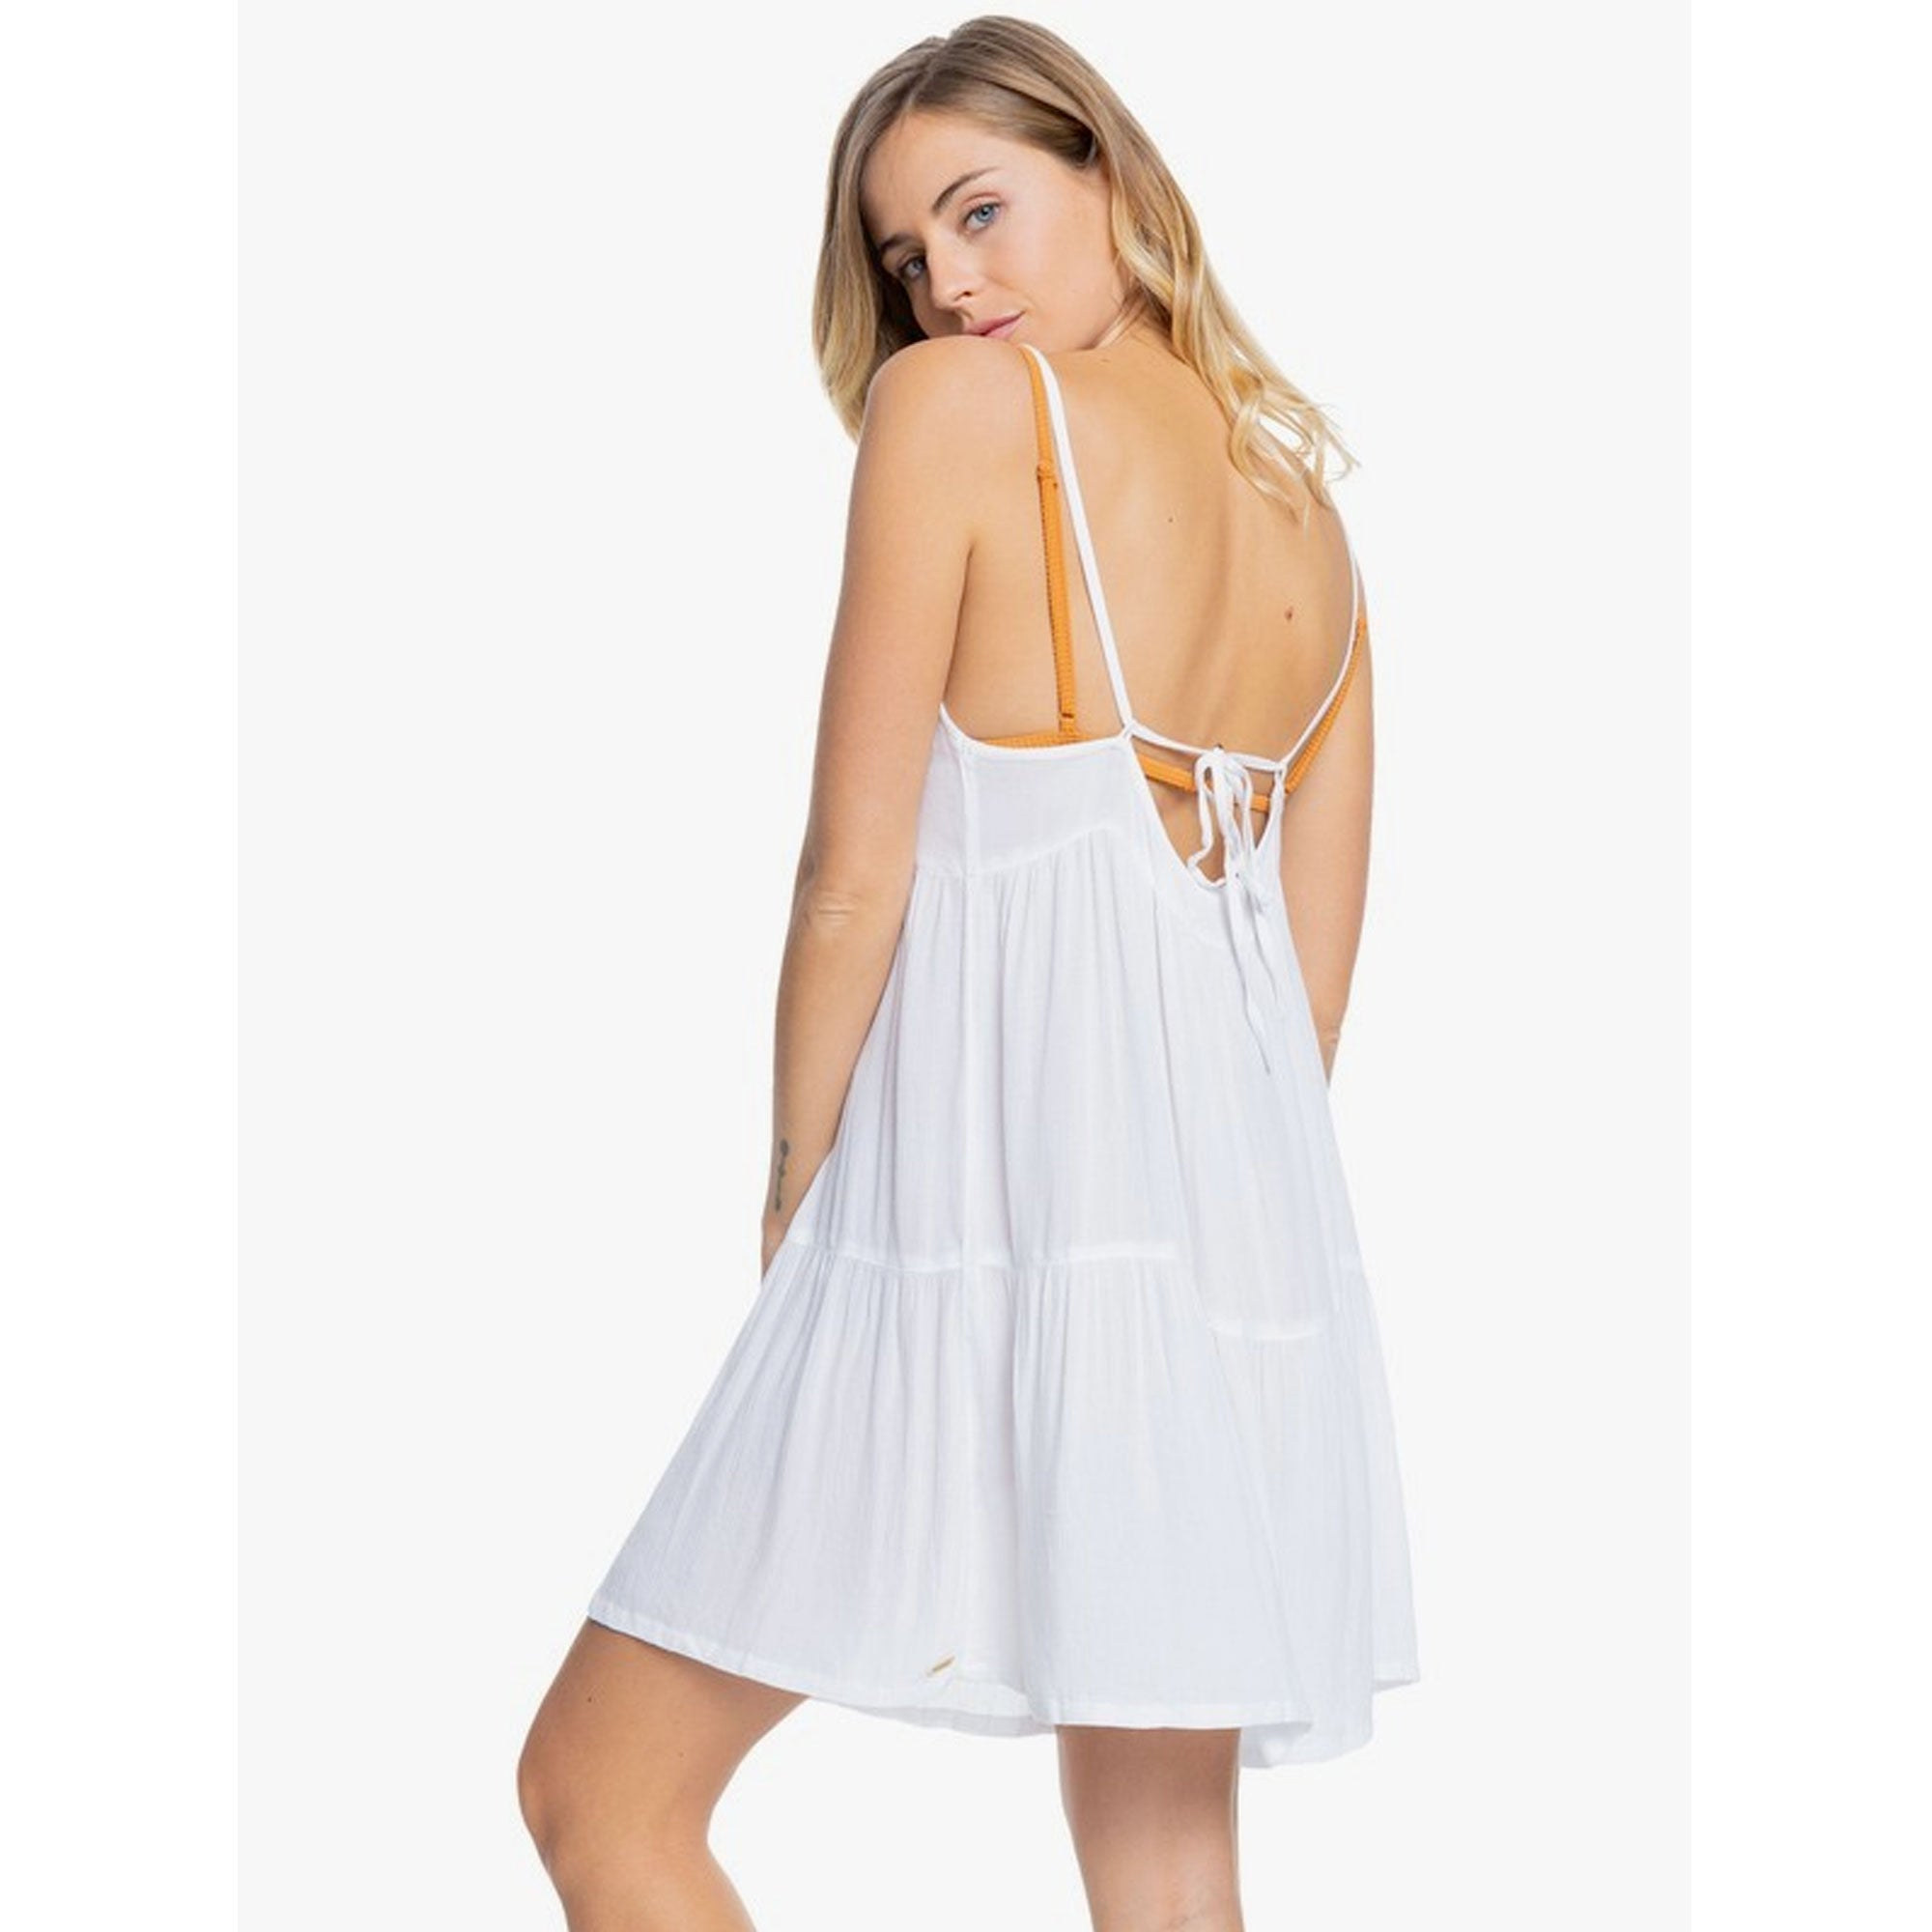 Roxy Sand Dune Women's Beach Dress